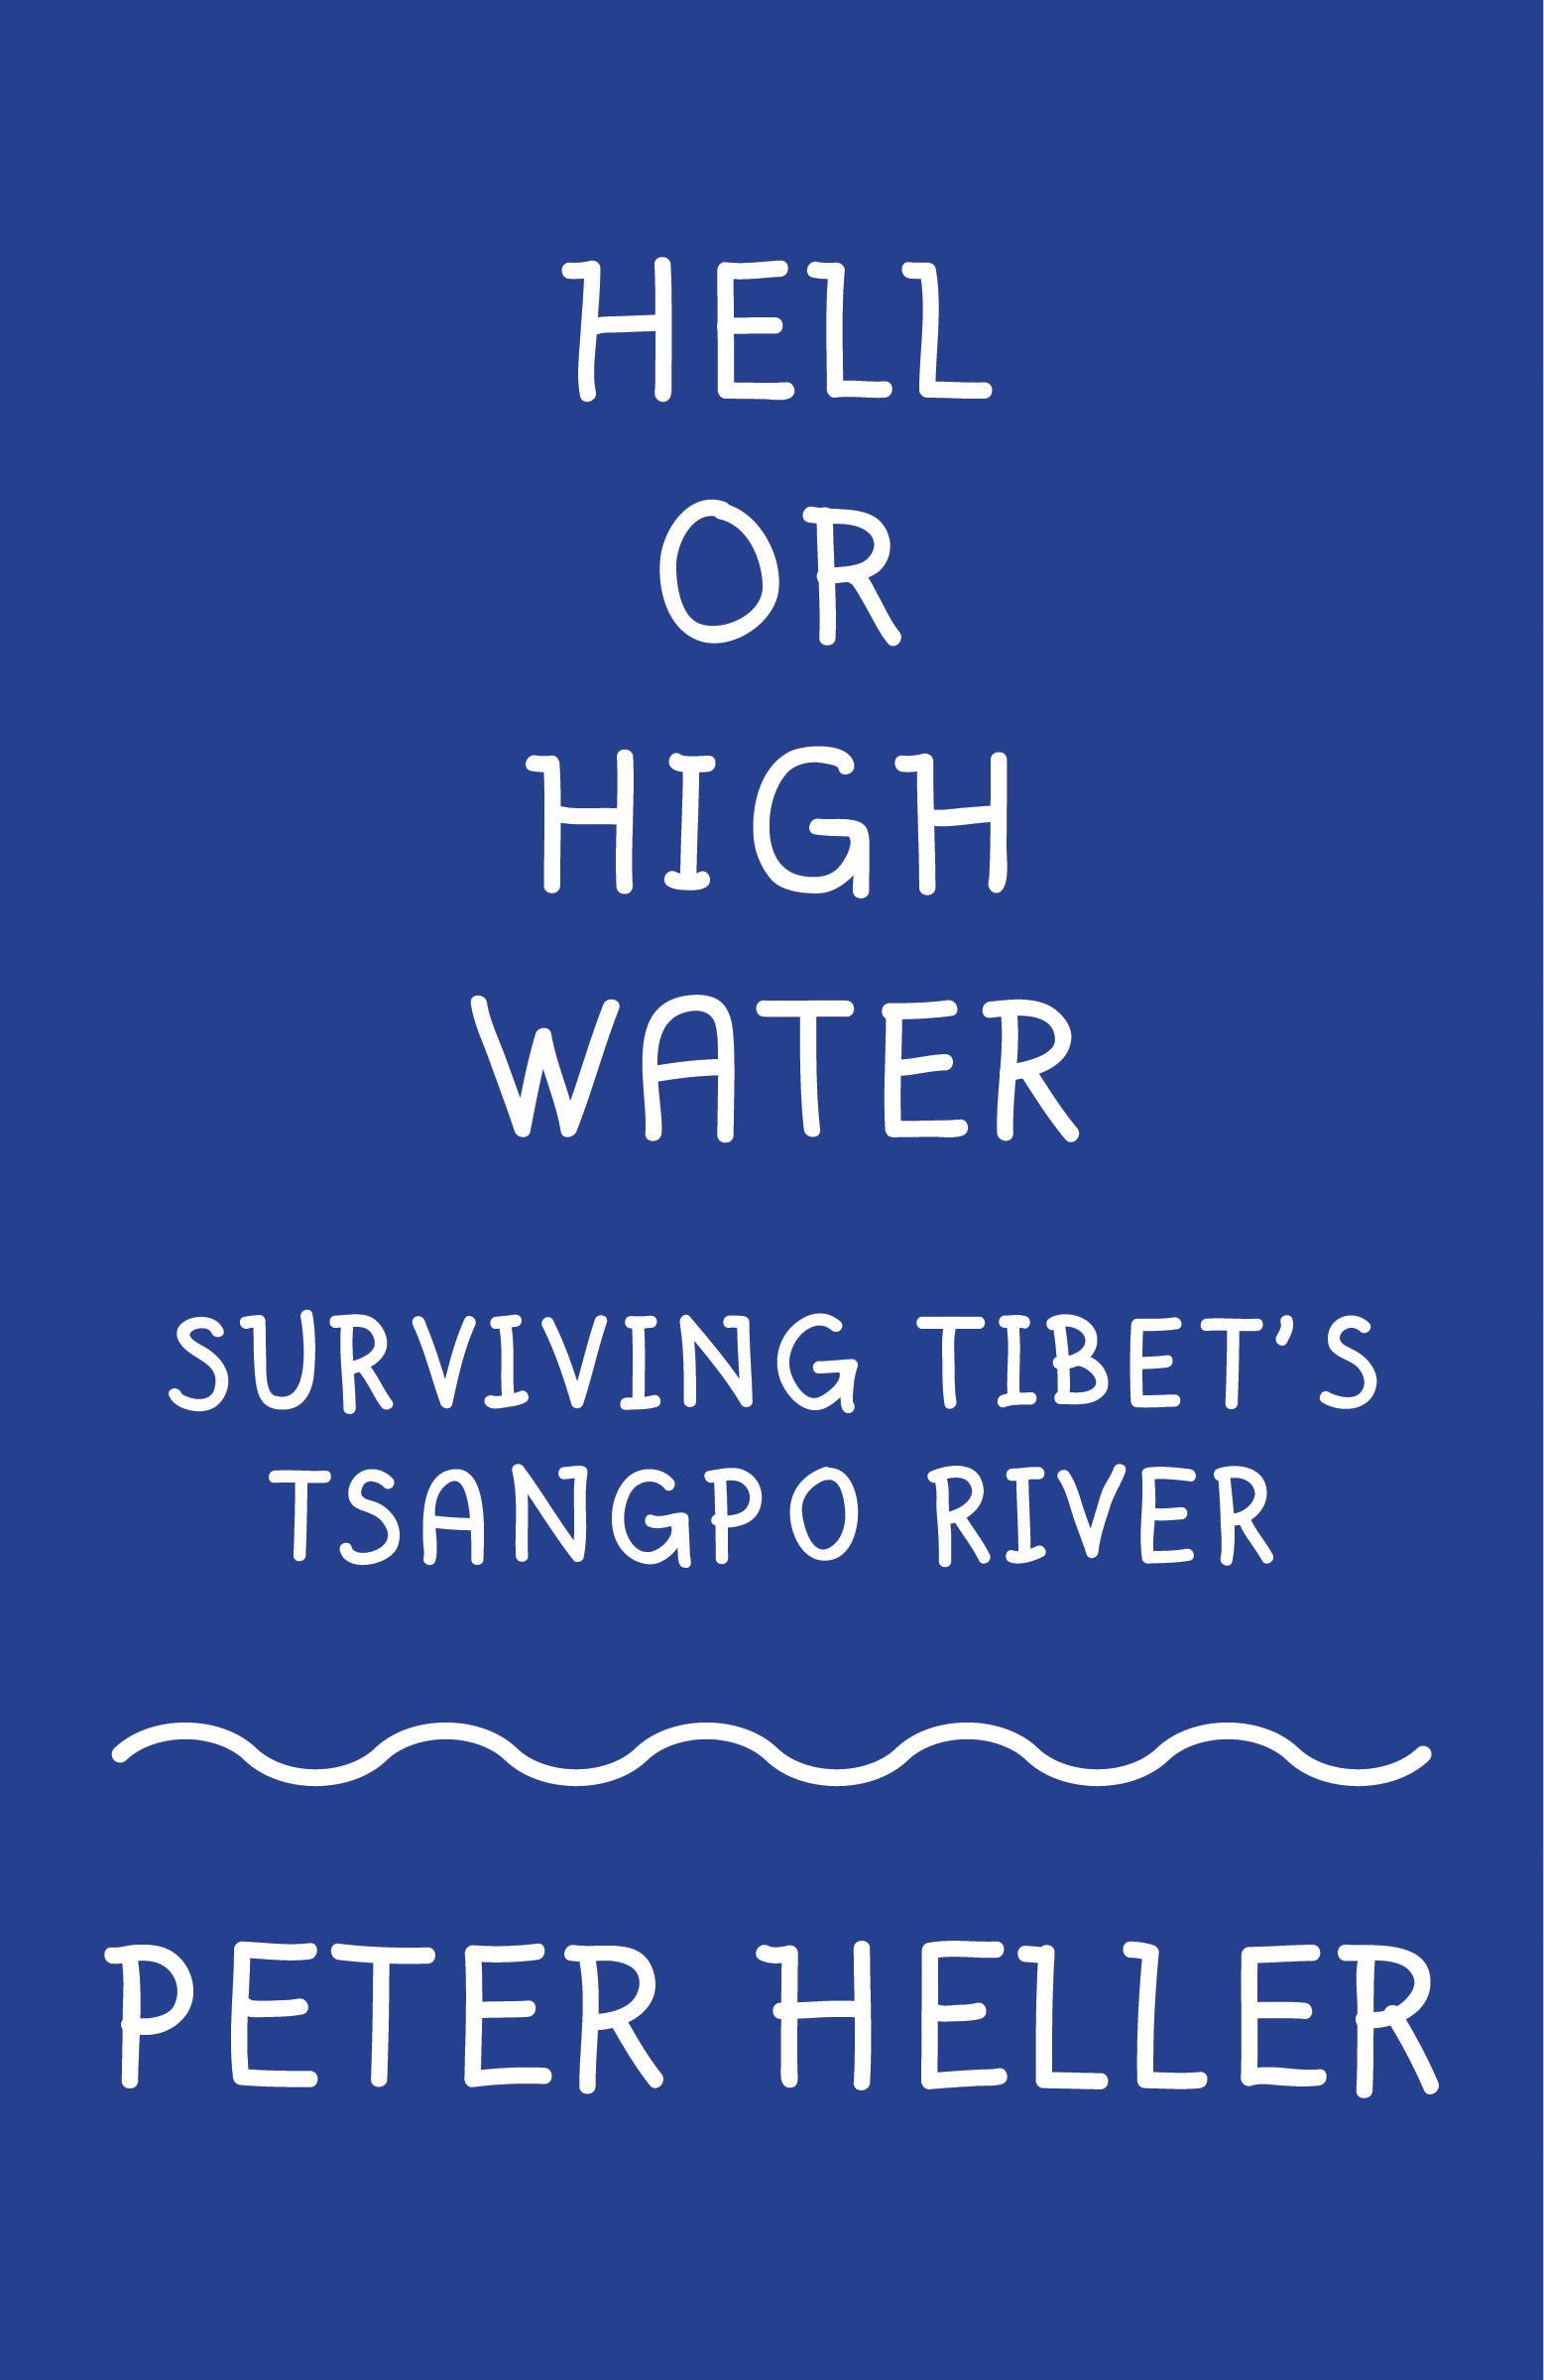 Hell or High Water: Surviving Tibet's Tsango River (Vintage Departures) (English Edition)